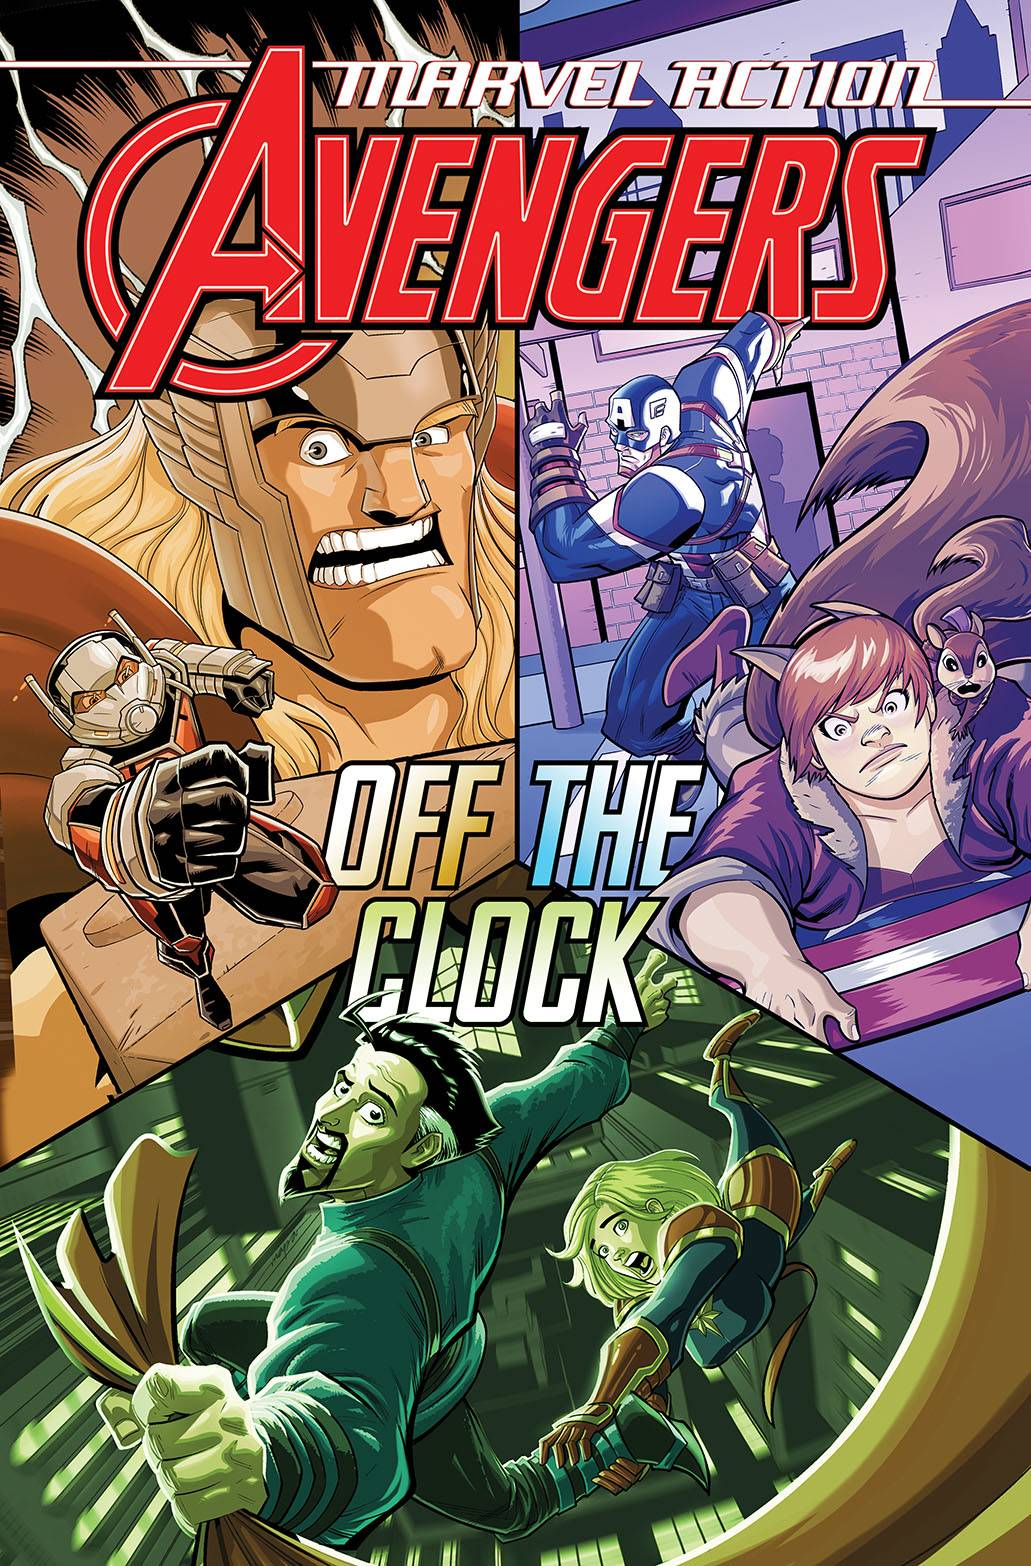 MARVEL ACTION AVENGERS TP BOOK 05 OFF THE CLOCK (RES)